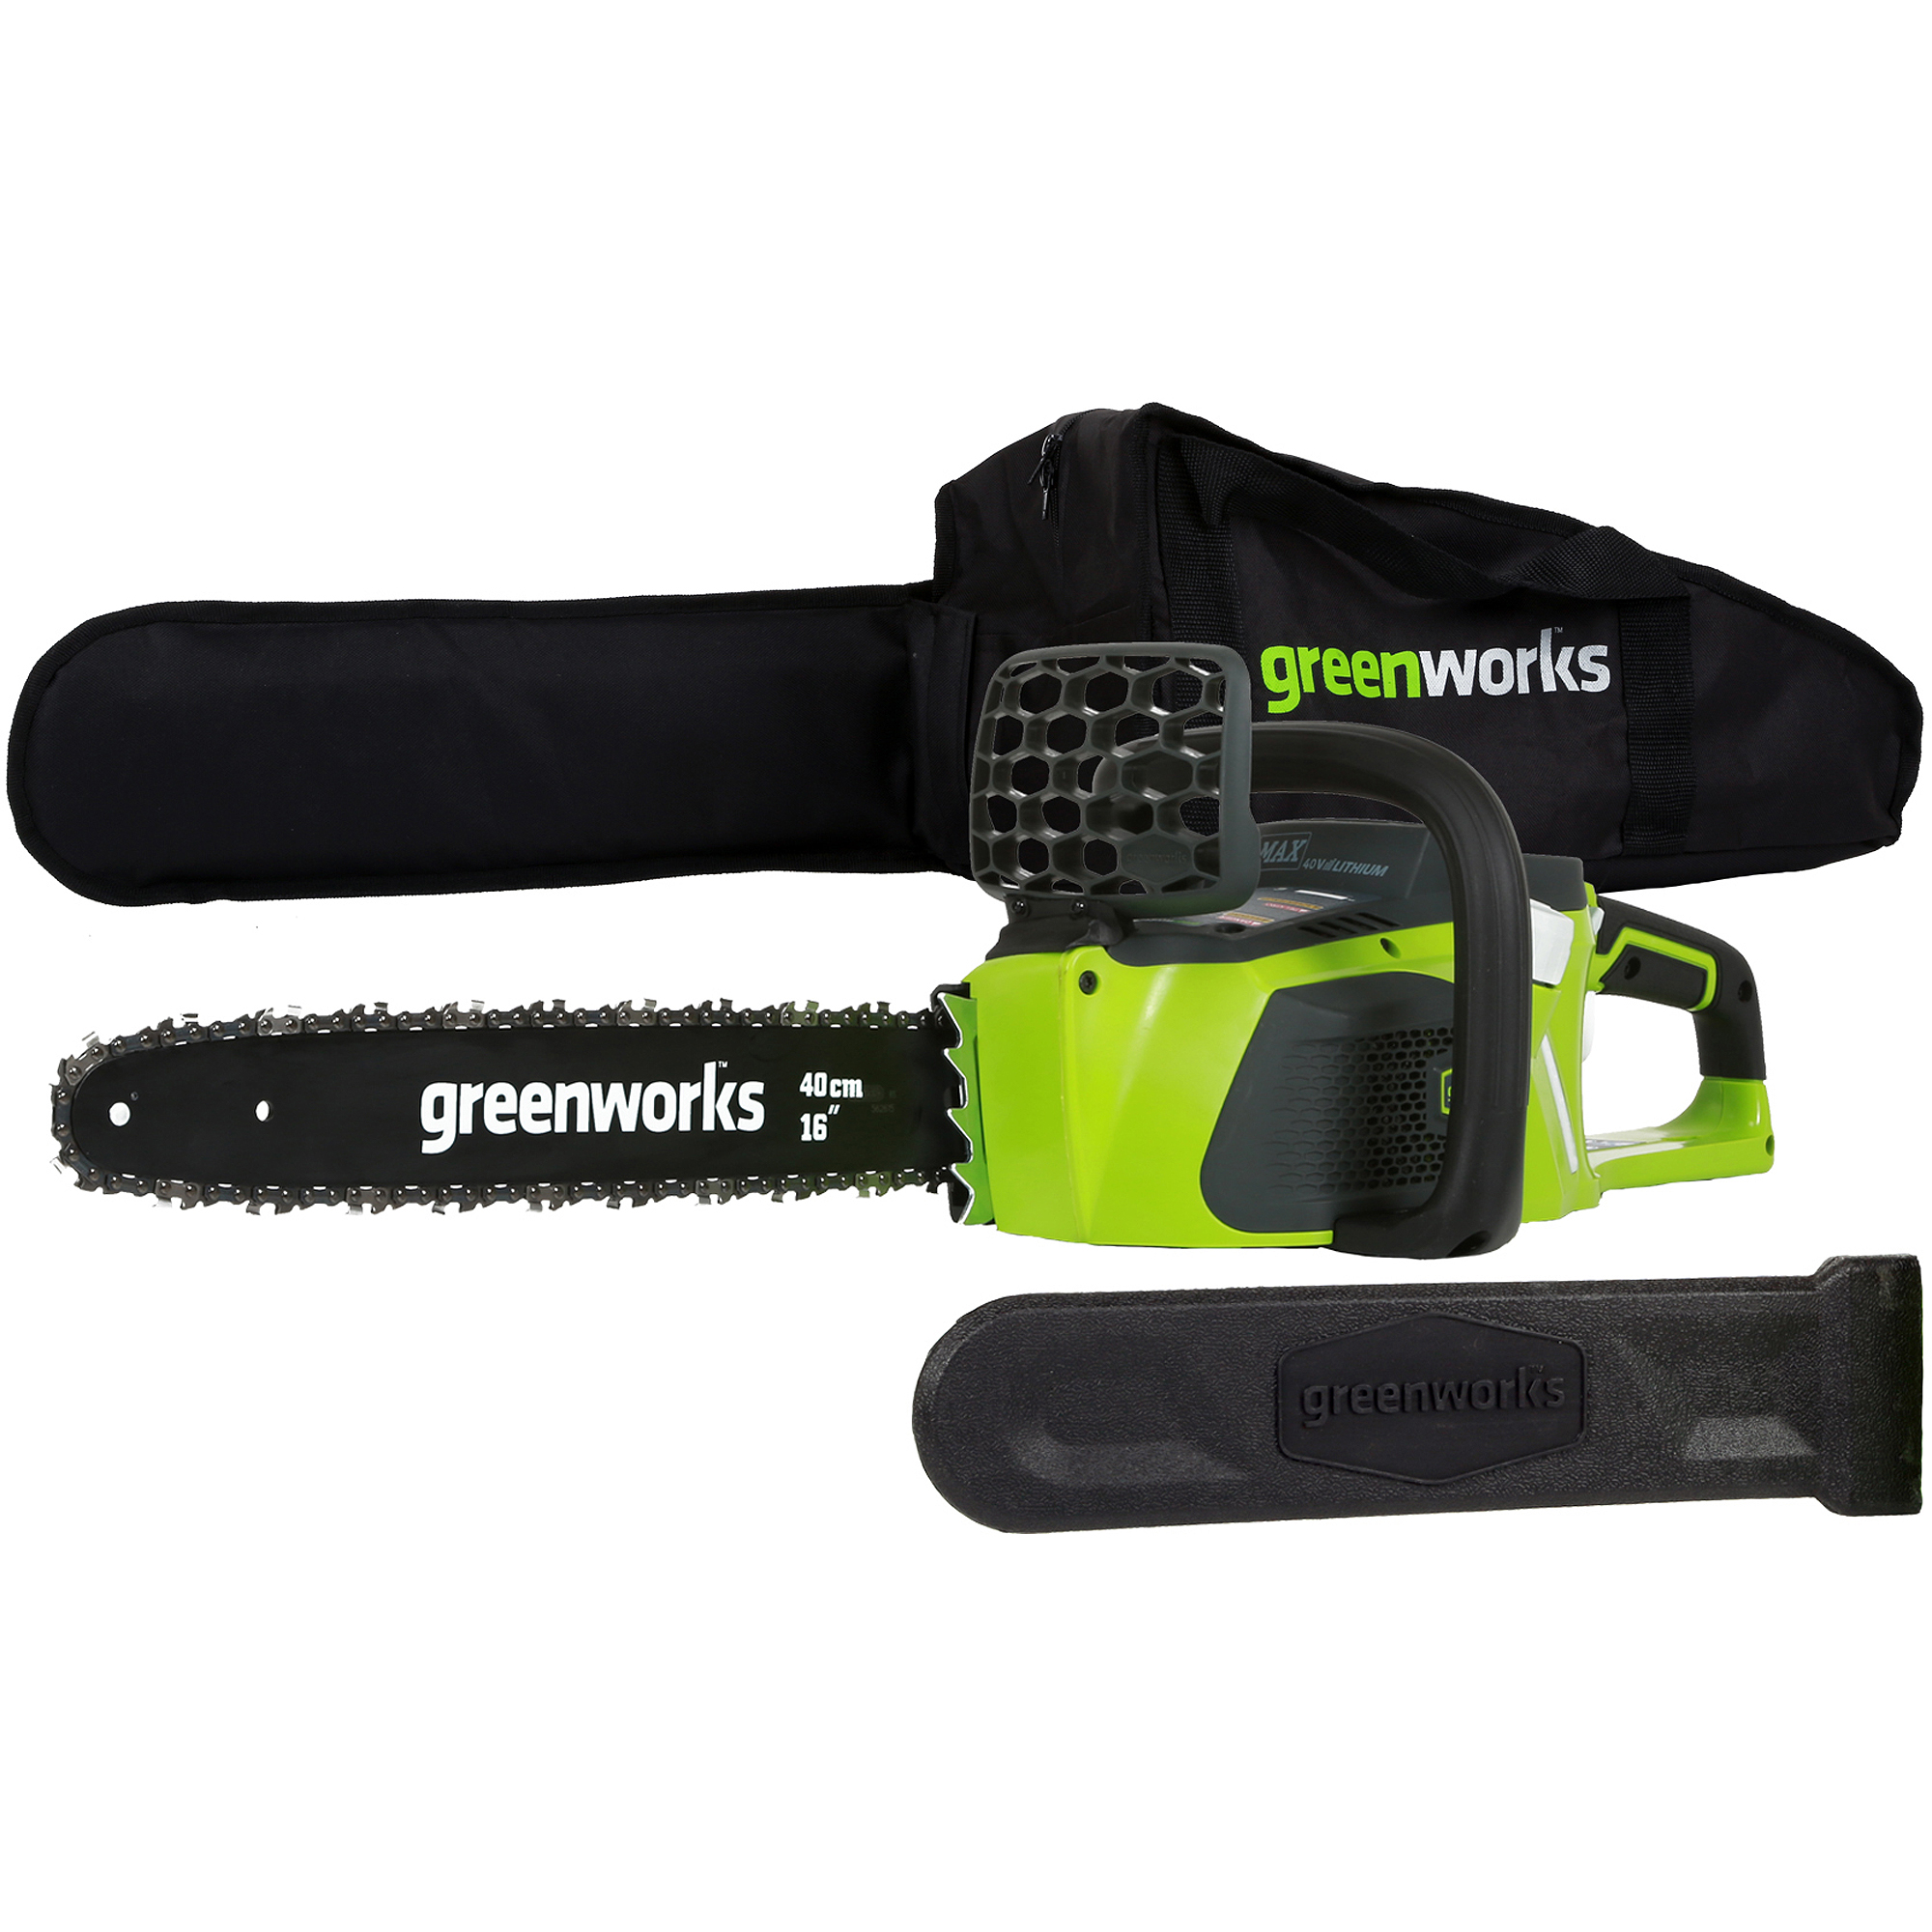 "GreenWorks 20322 40V 16"" Brushless Chainsaw, Battery and Charger Sold Separately"